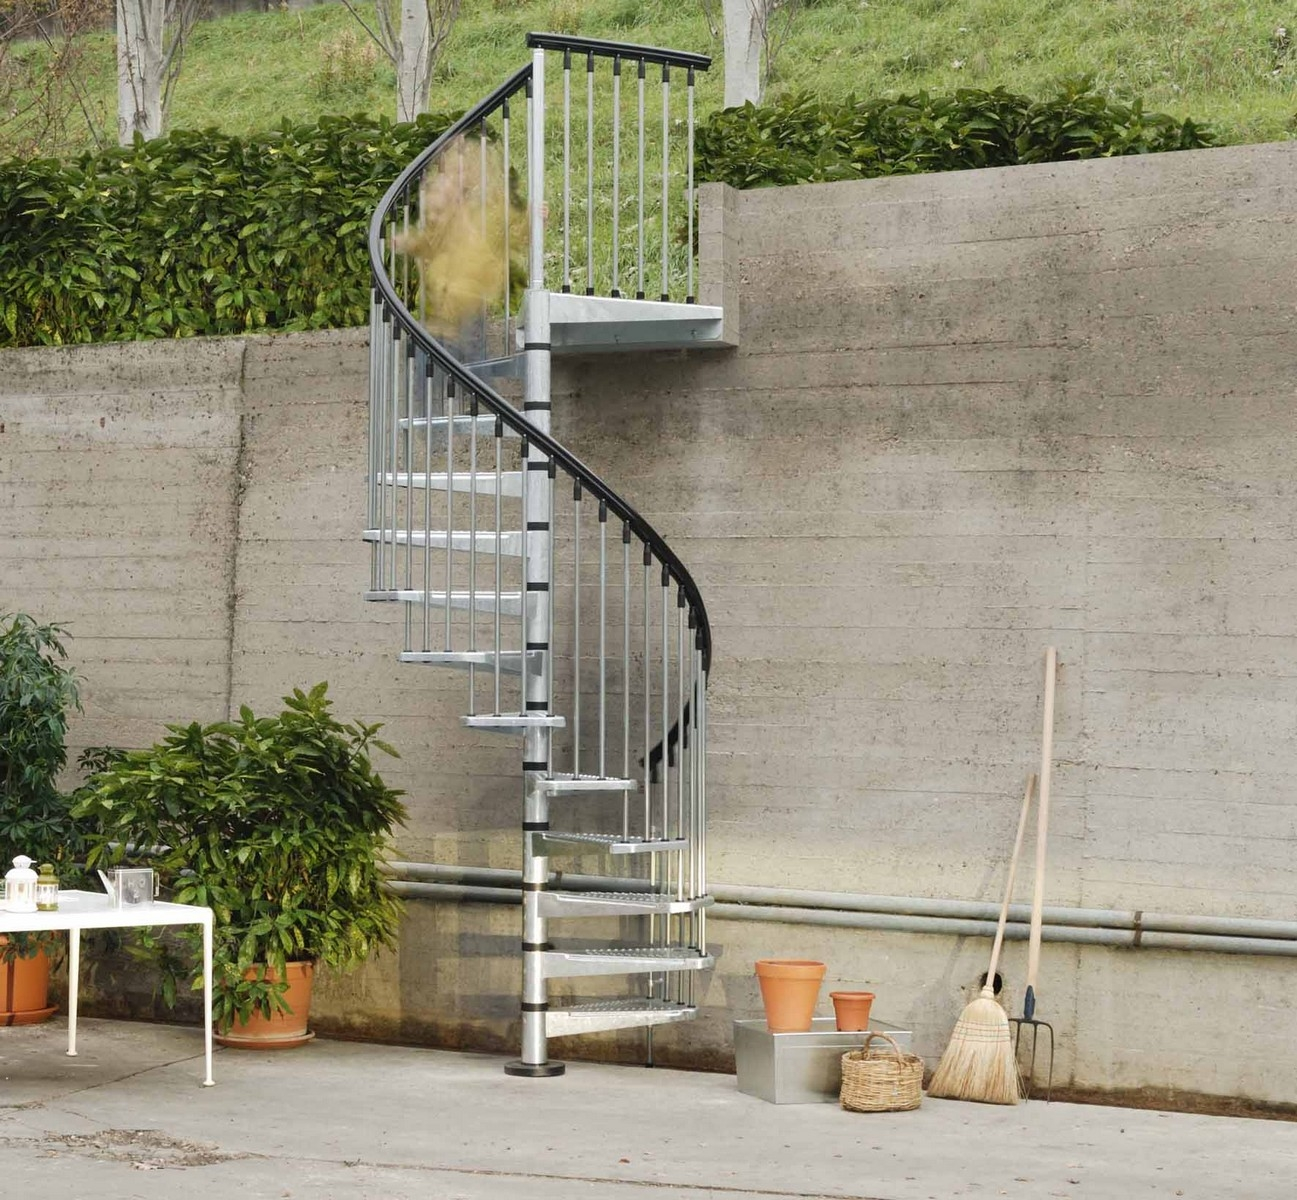 Metal Outdoor Spiral Staircase Exterior Stairs   Outdoor Spiral Staircase Lowes   Kits Lowes   Curved Staircase   Lowes Com   Dolle Calgary   Handrail